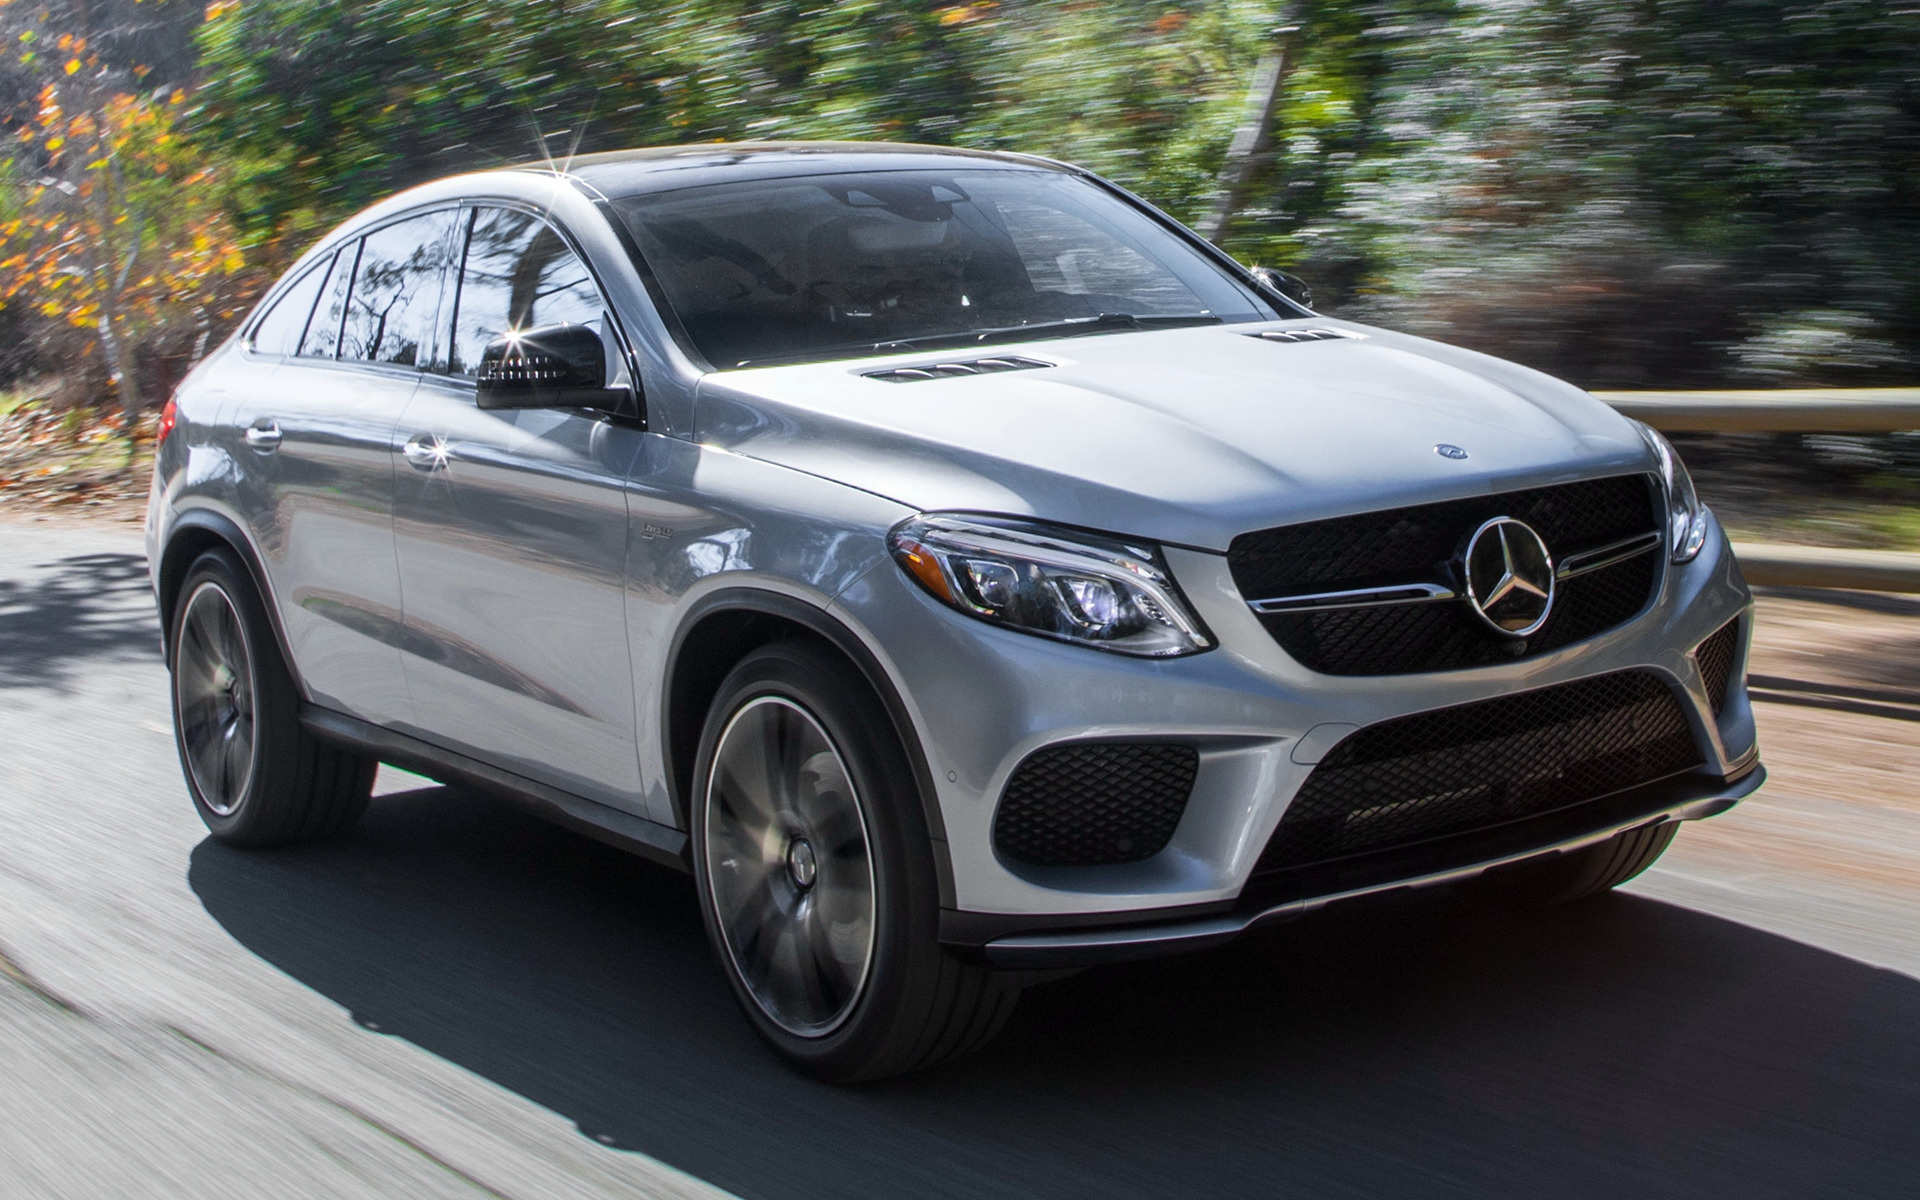 Gle 63s Amg >> 2017 Mercedes-AMG GLE 43 Coupe (US) - Wallpapers and HD Images | Car Pixel